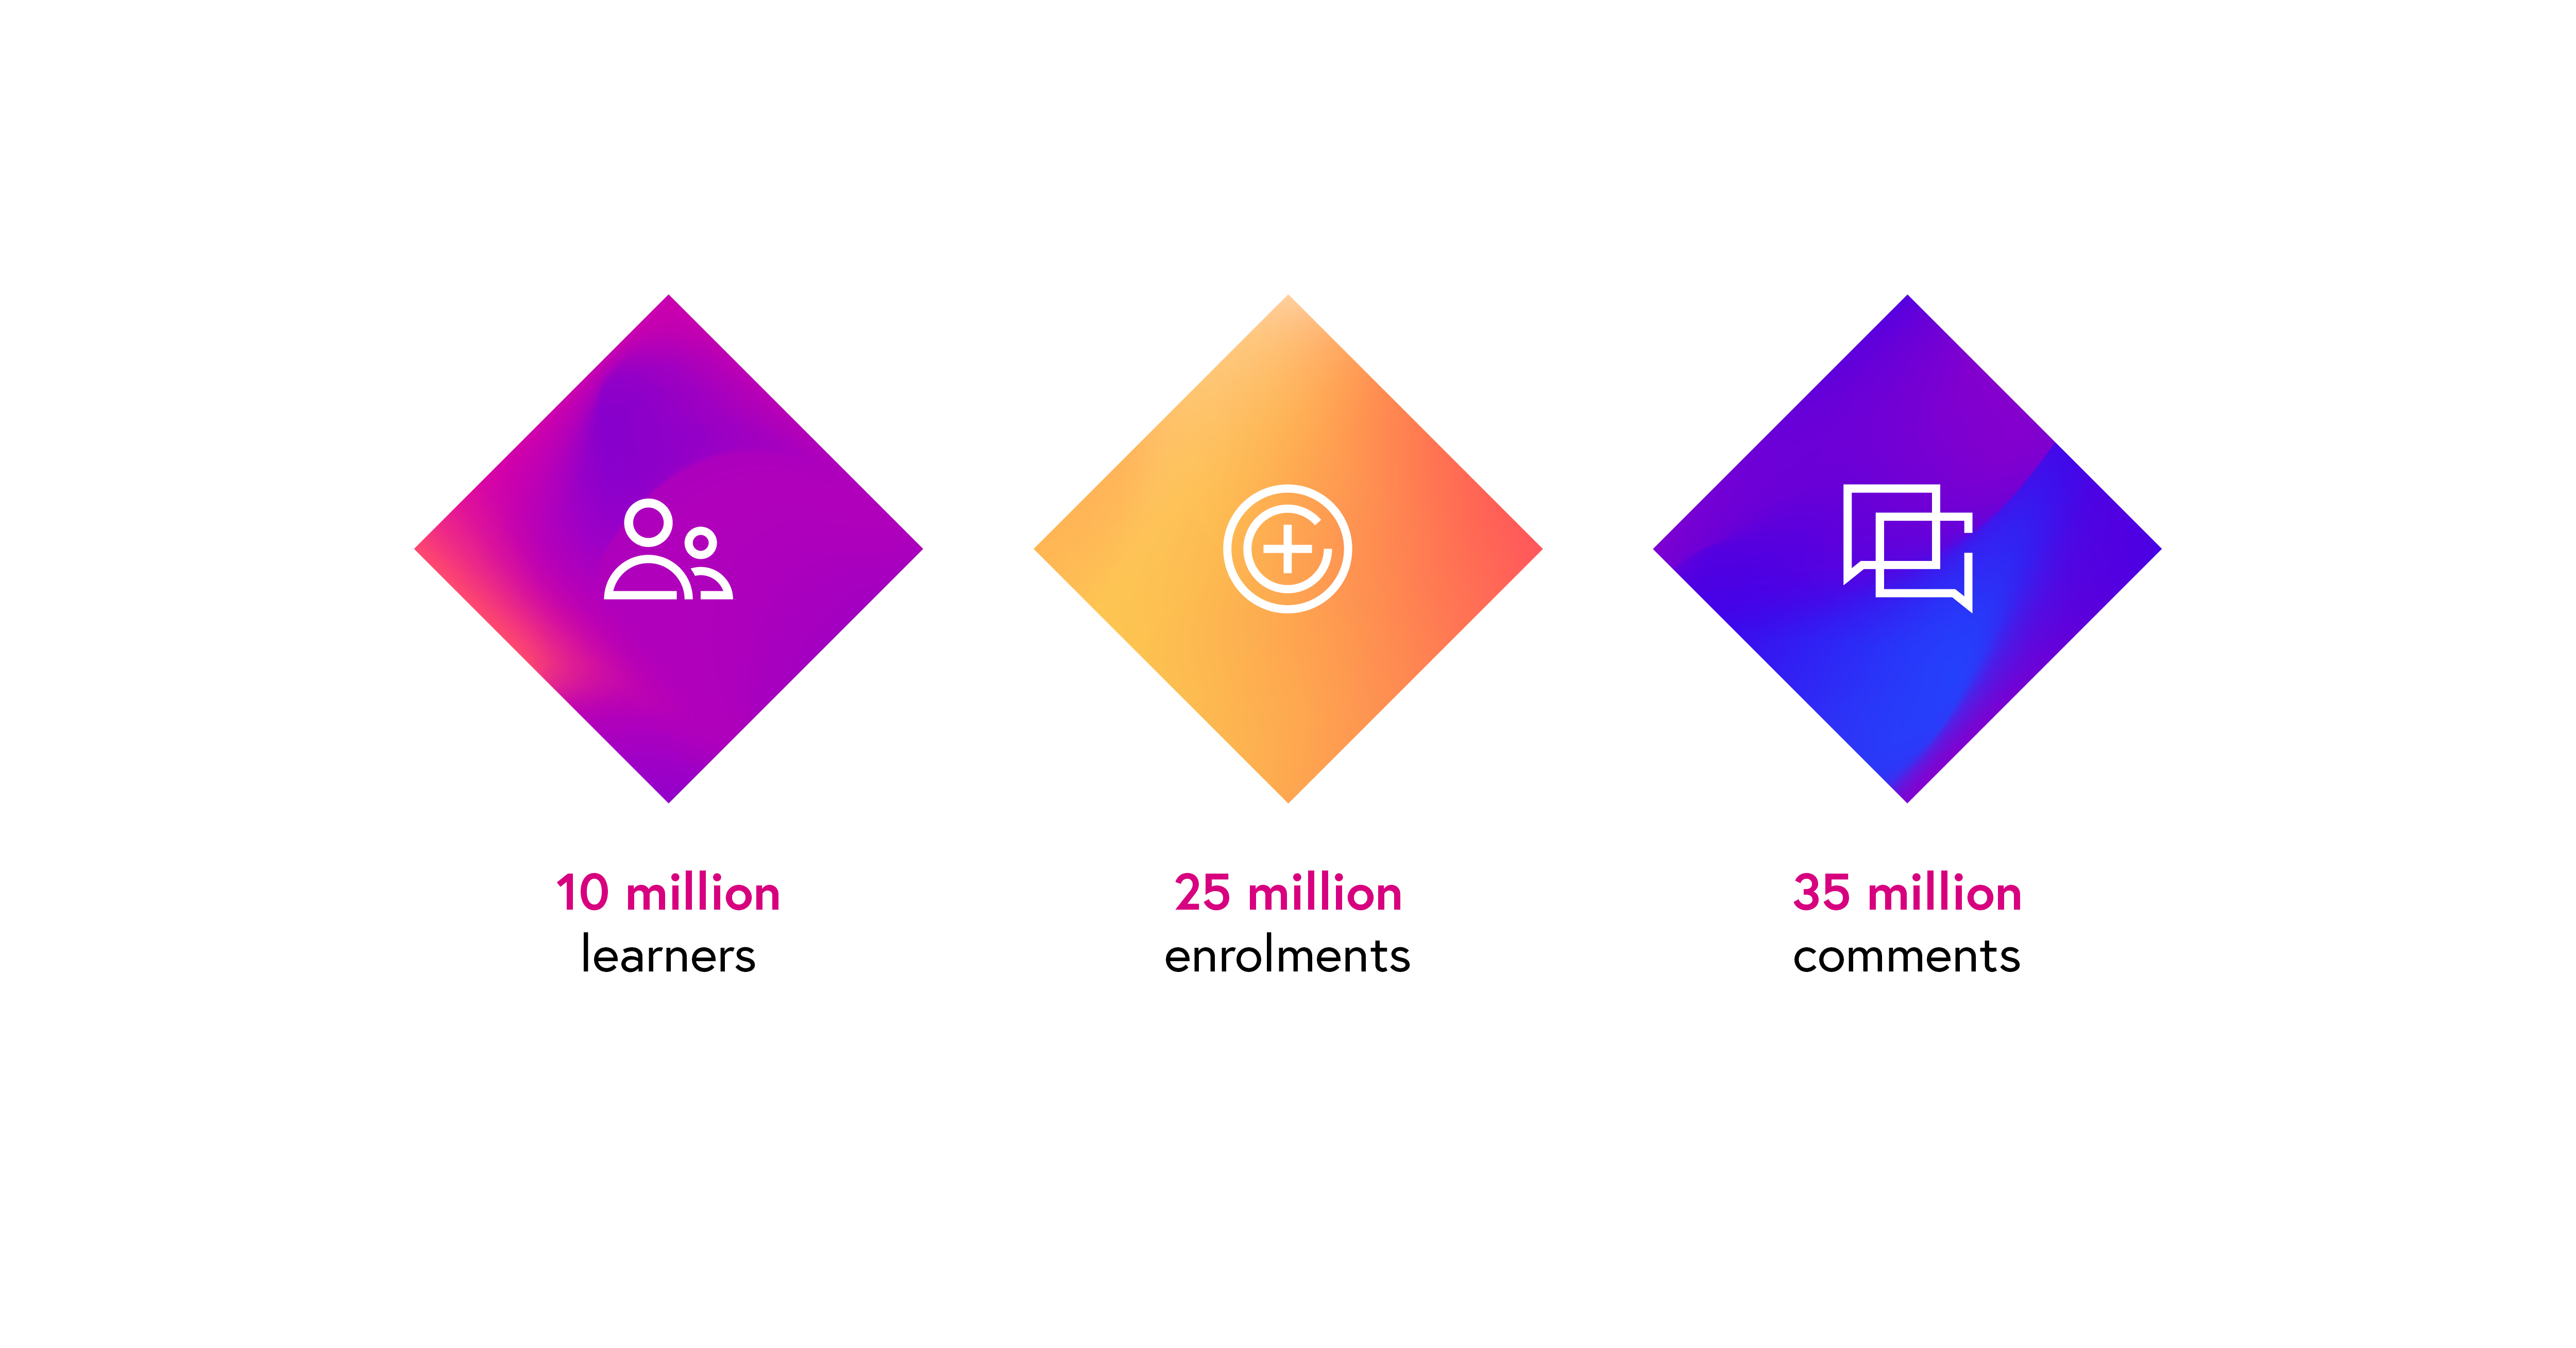 Infographic showing 25 million enrolments, 10 million learners and 35 million comments.